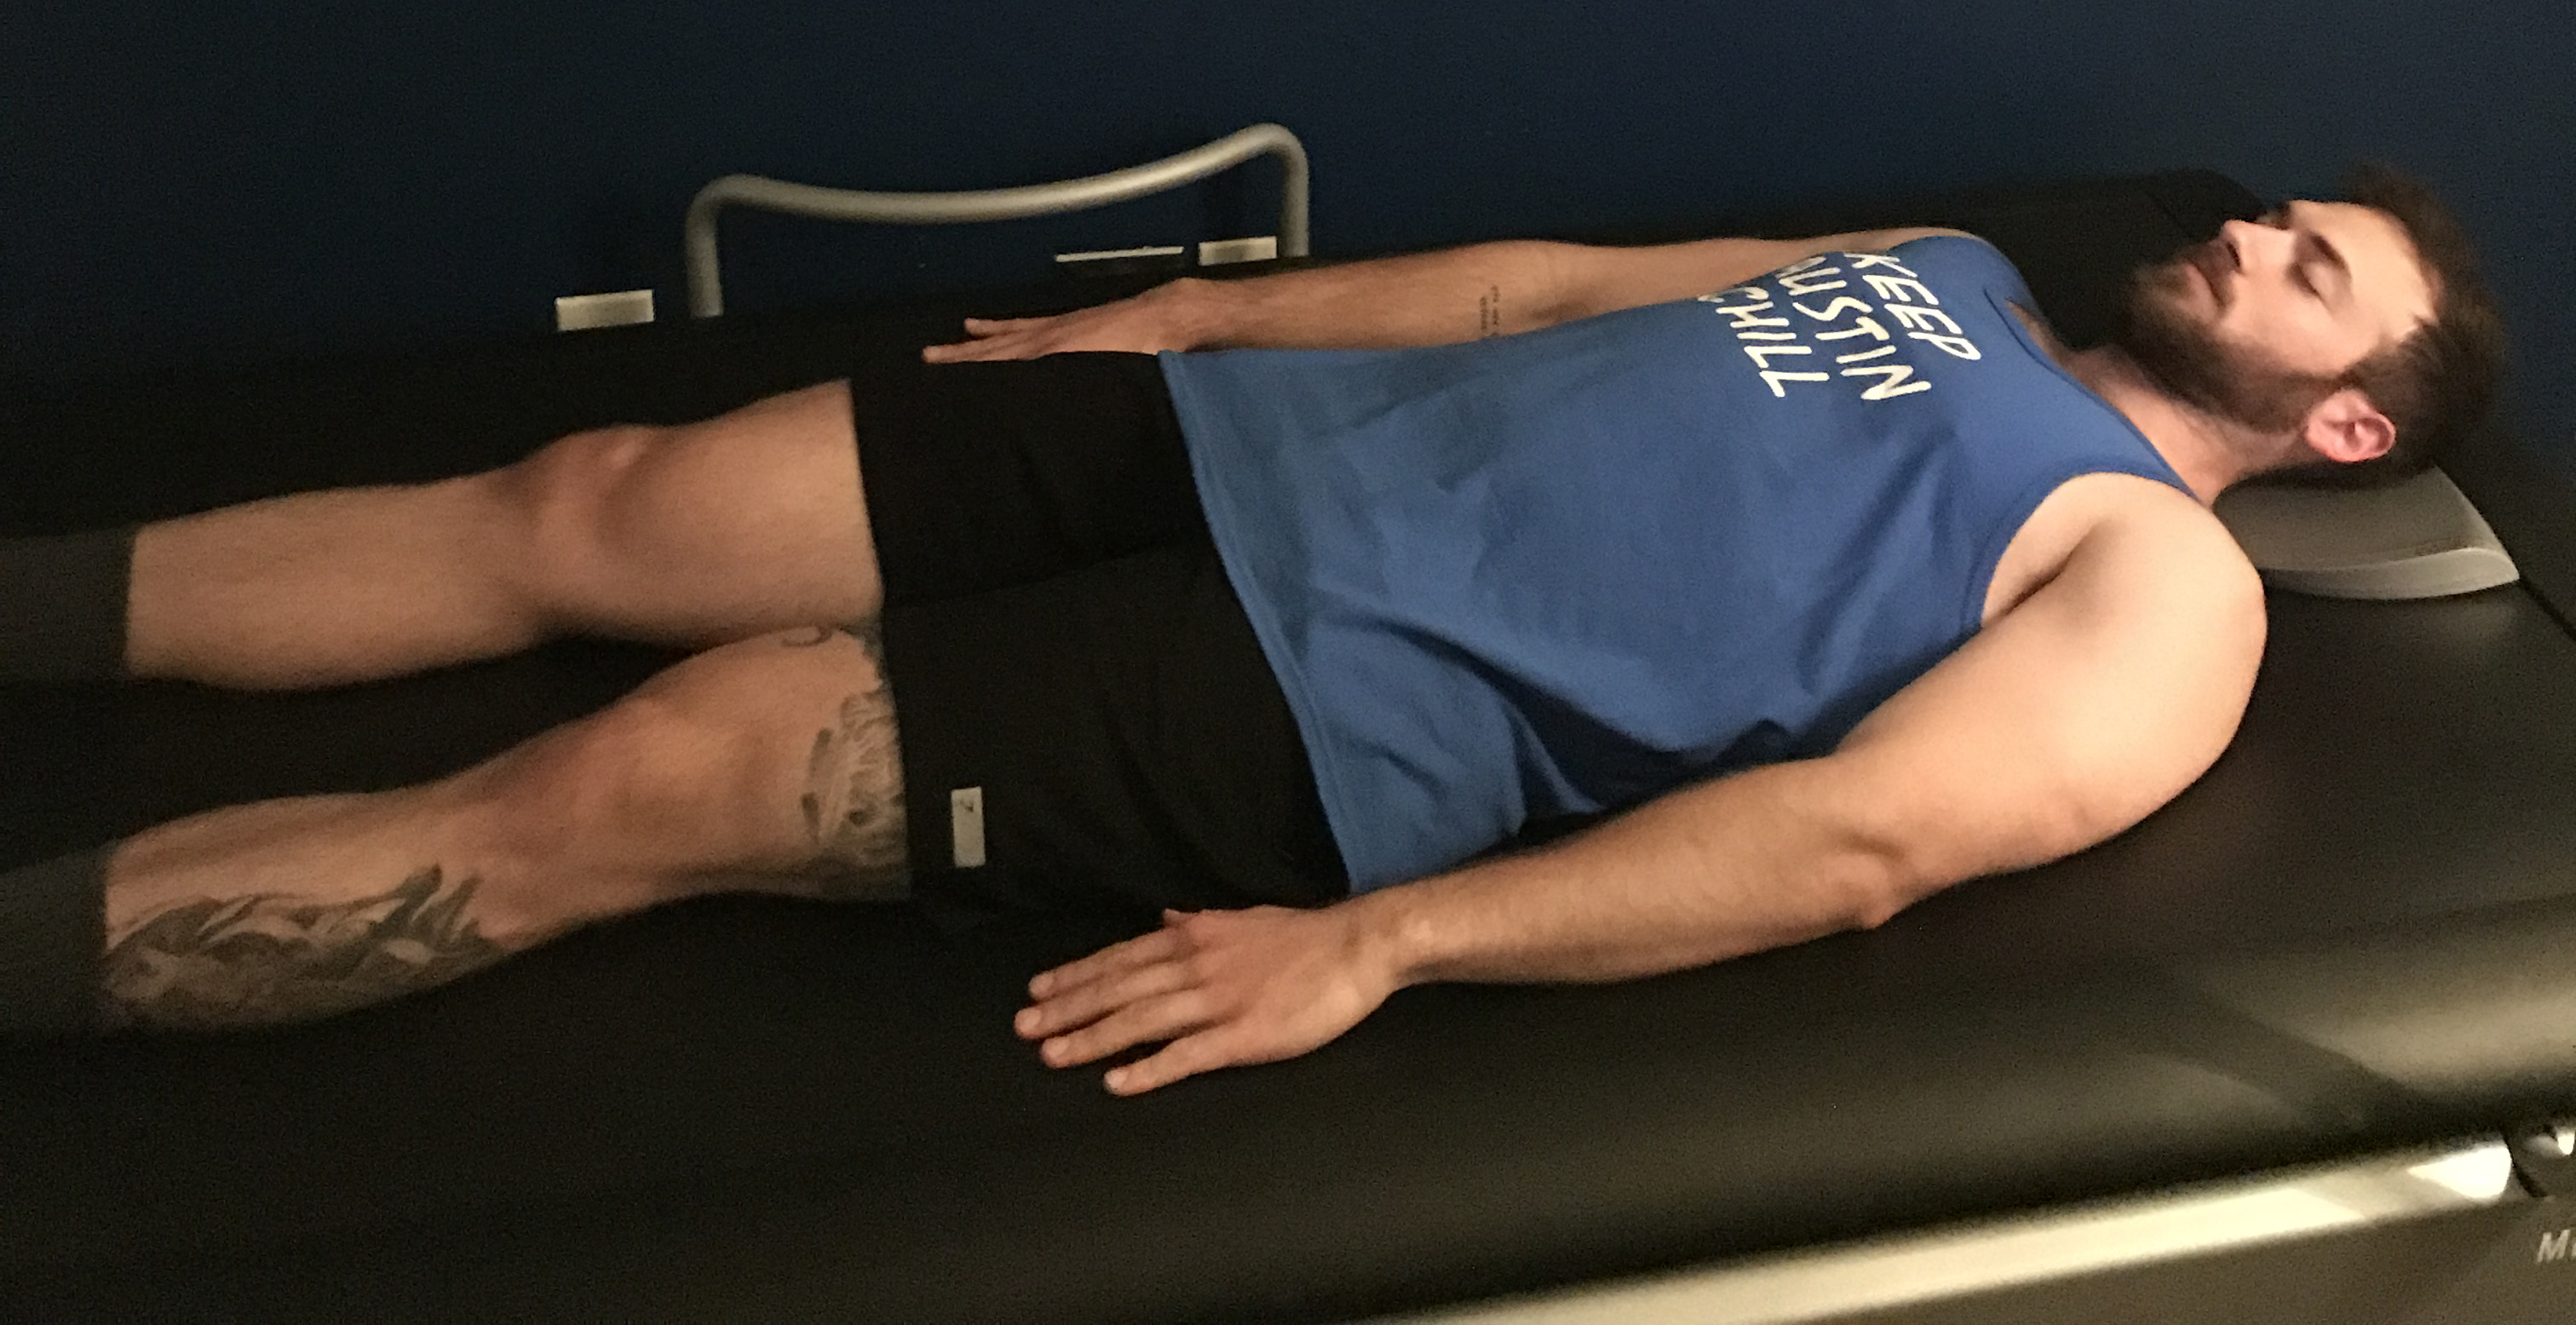 Customer at US Cryo Austin relaxing in the HydroMassage Bed